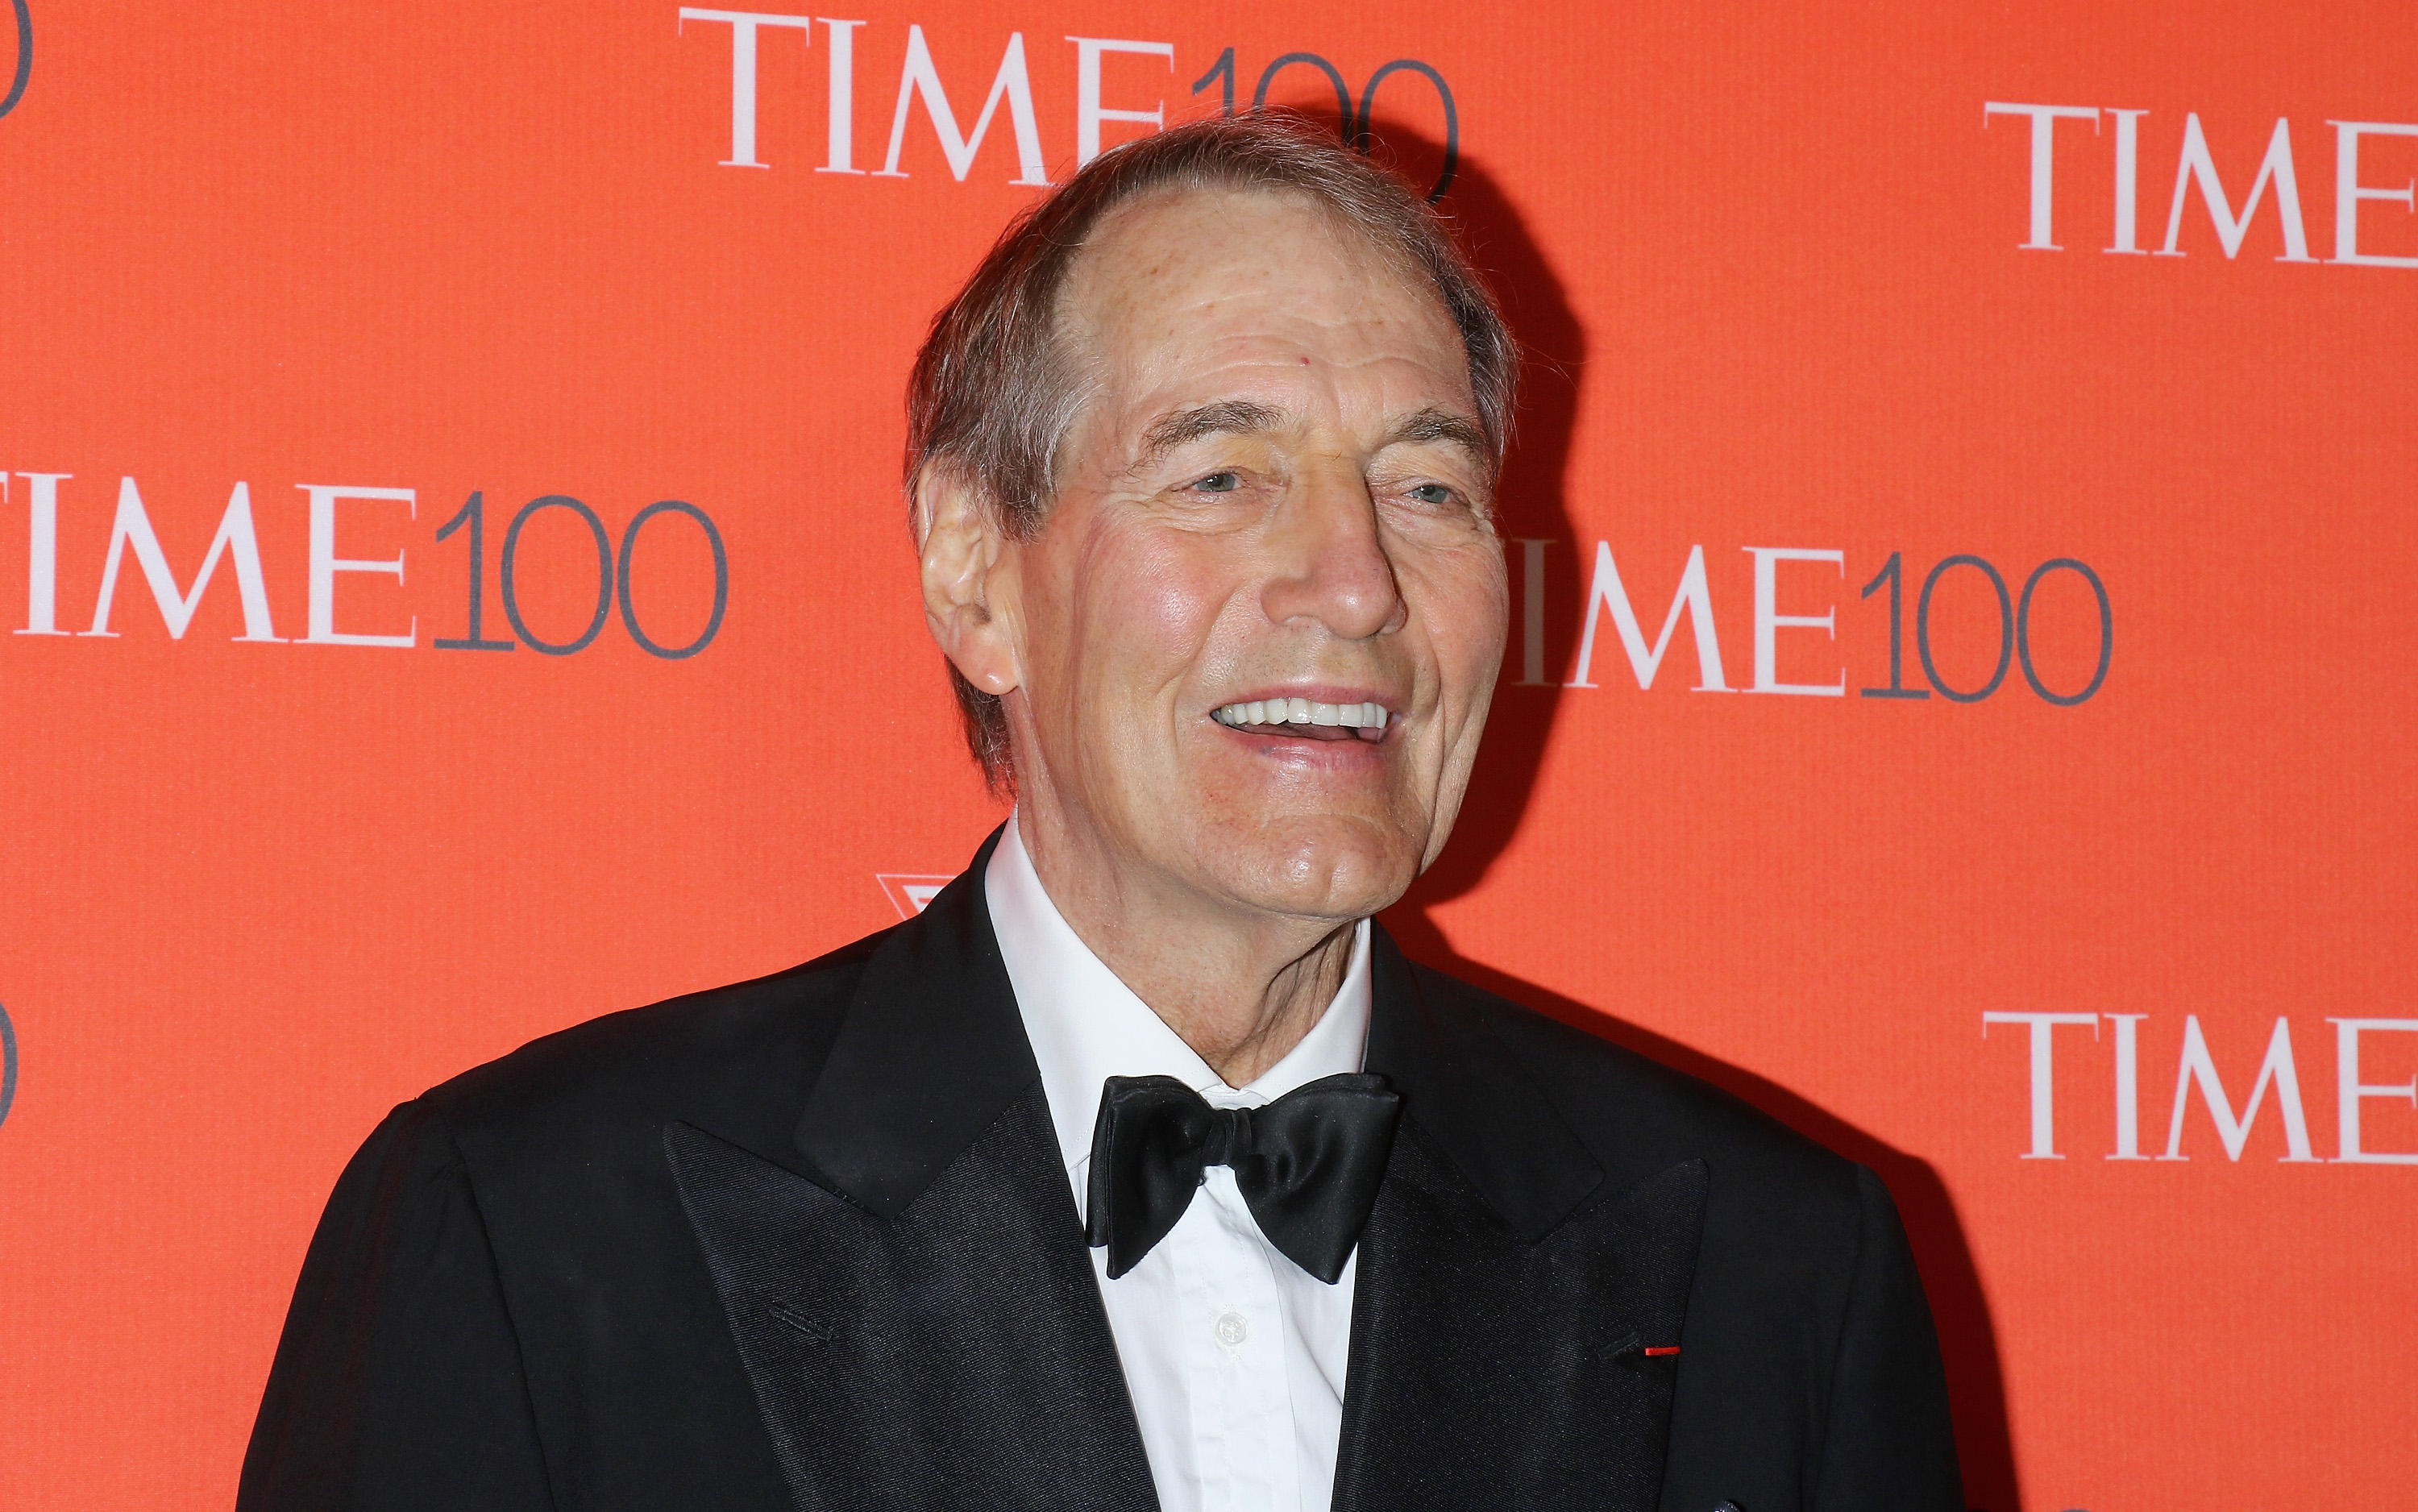 Talk show host/ journalist Charlie Rose attends the 2016 Time 100 Gala at Frederick P. Rose Hall, Jazz at Lincoln Center on April 26, 2016 in New York City.